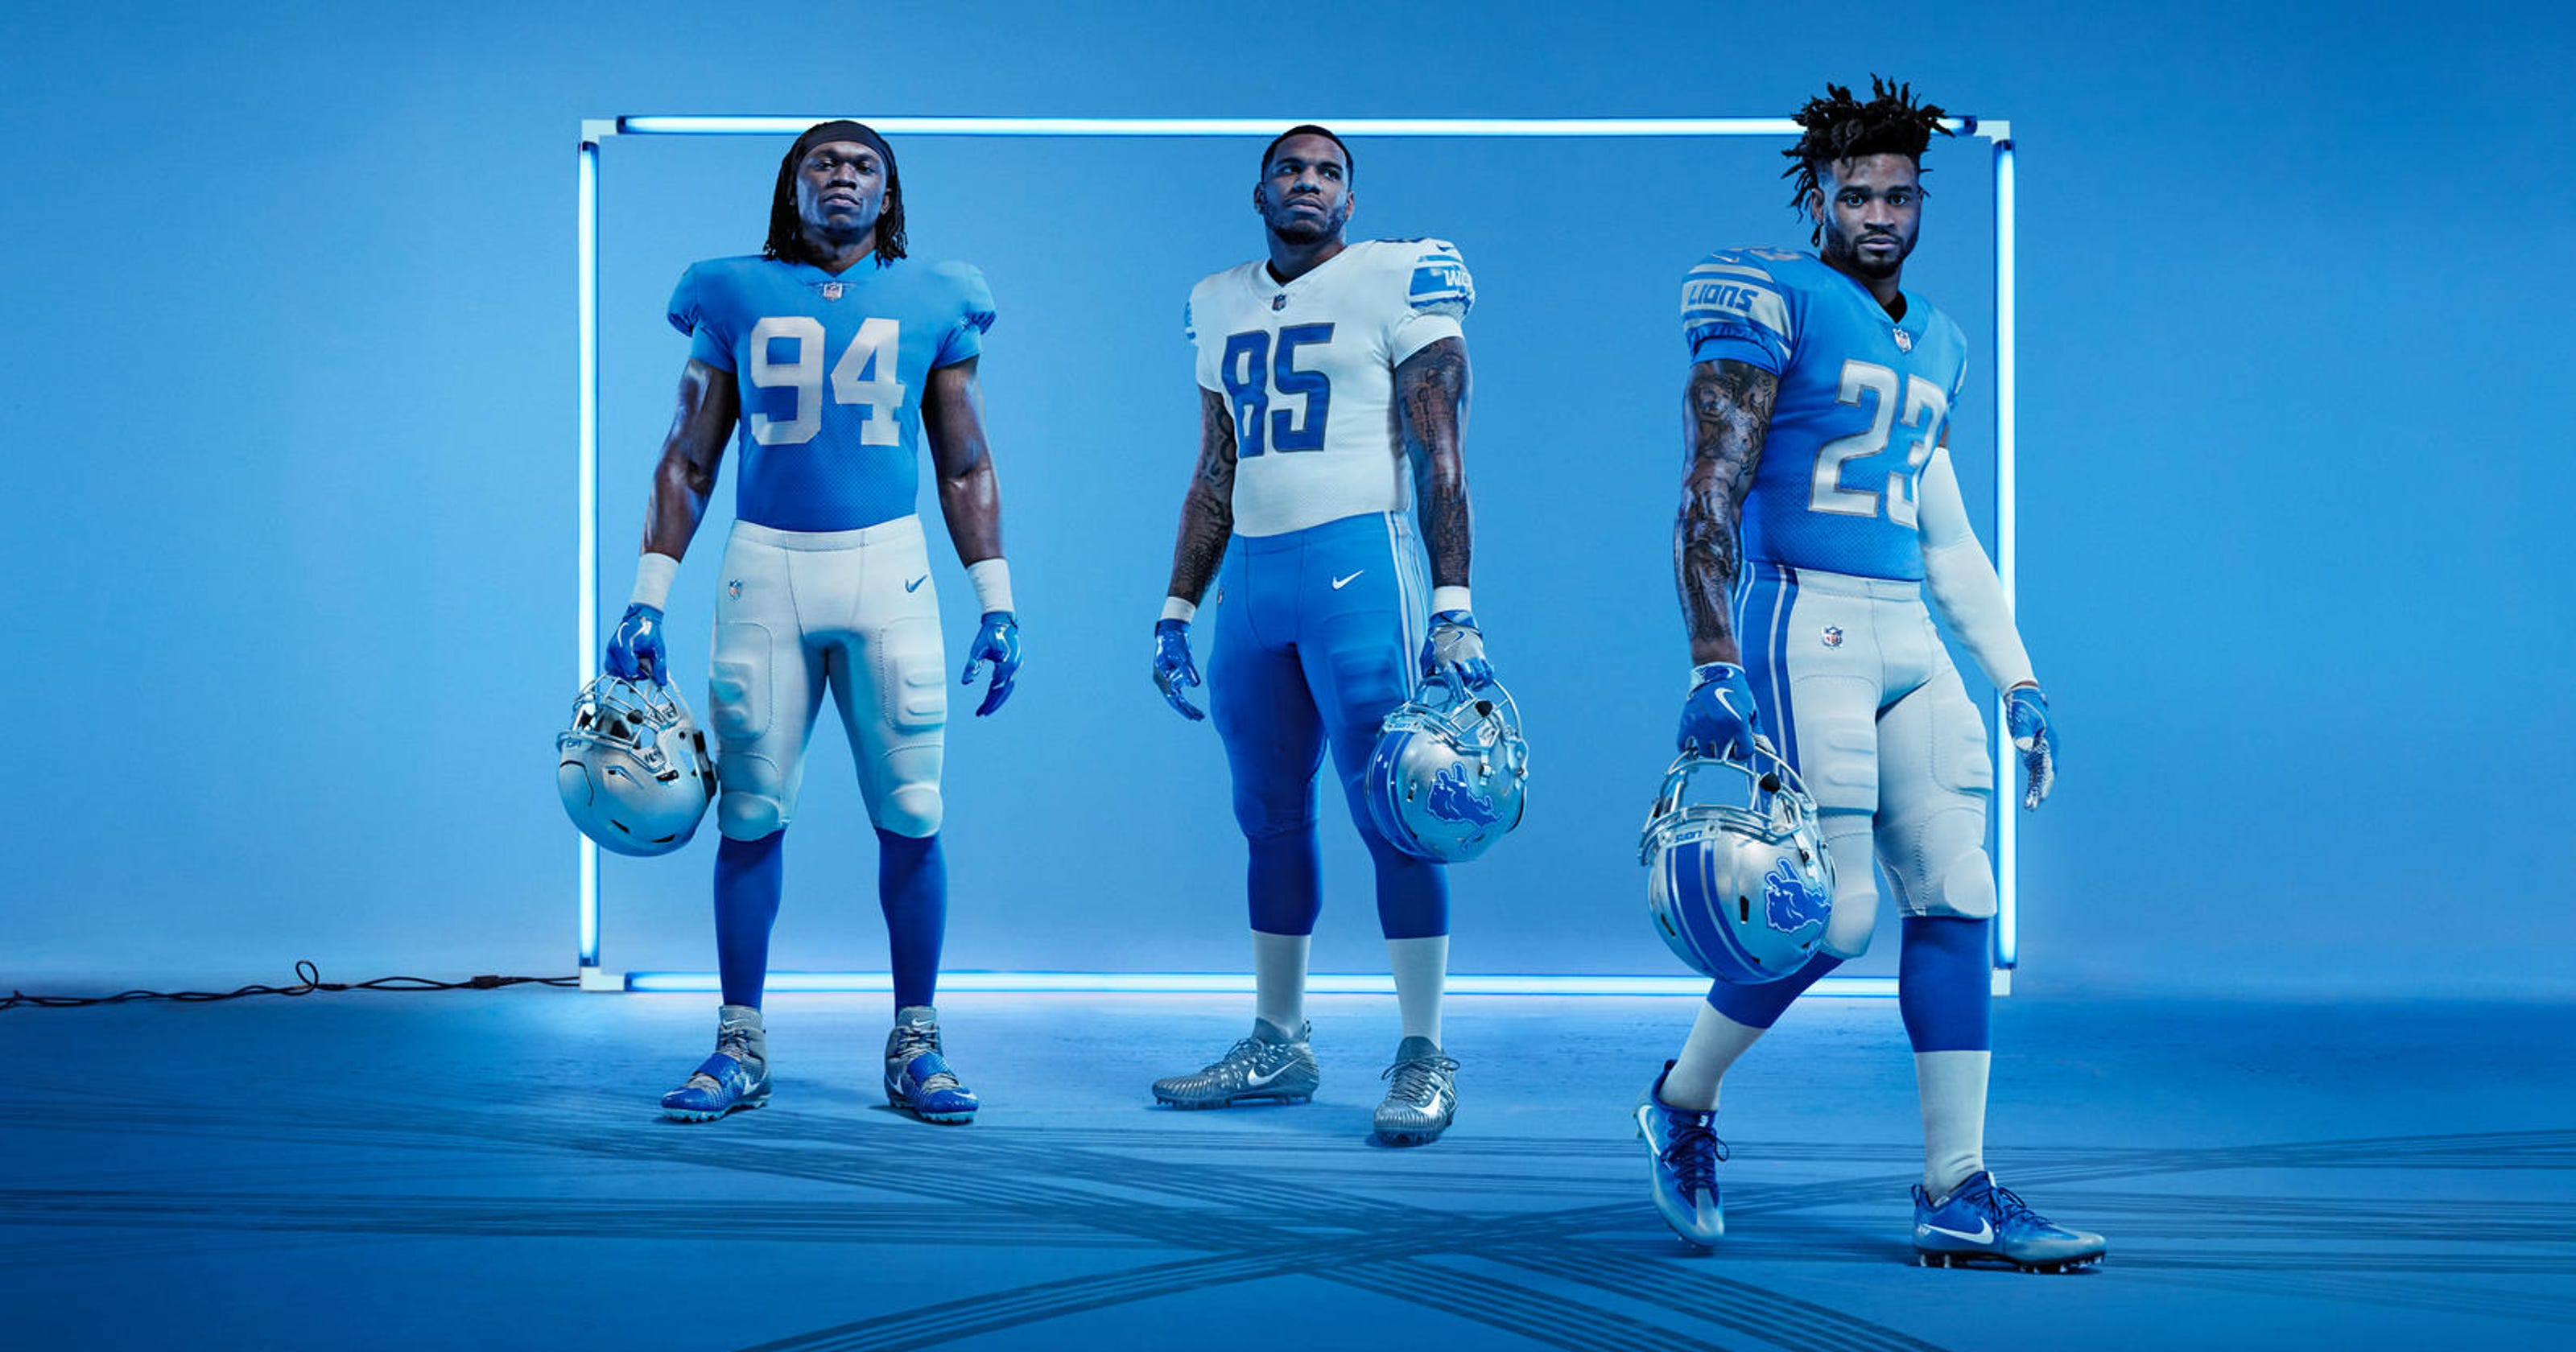 d51afcf6e65 Rod Wood  All four new Detroit Lions uniforms should be worn in 2017